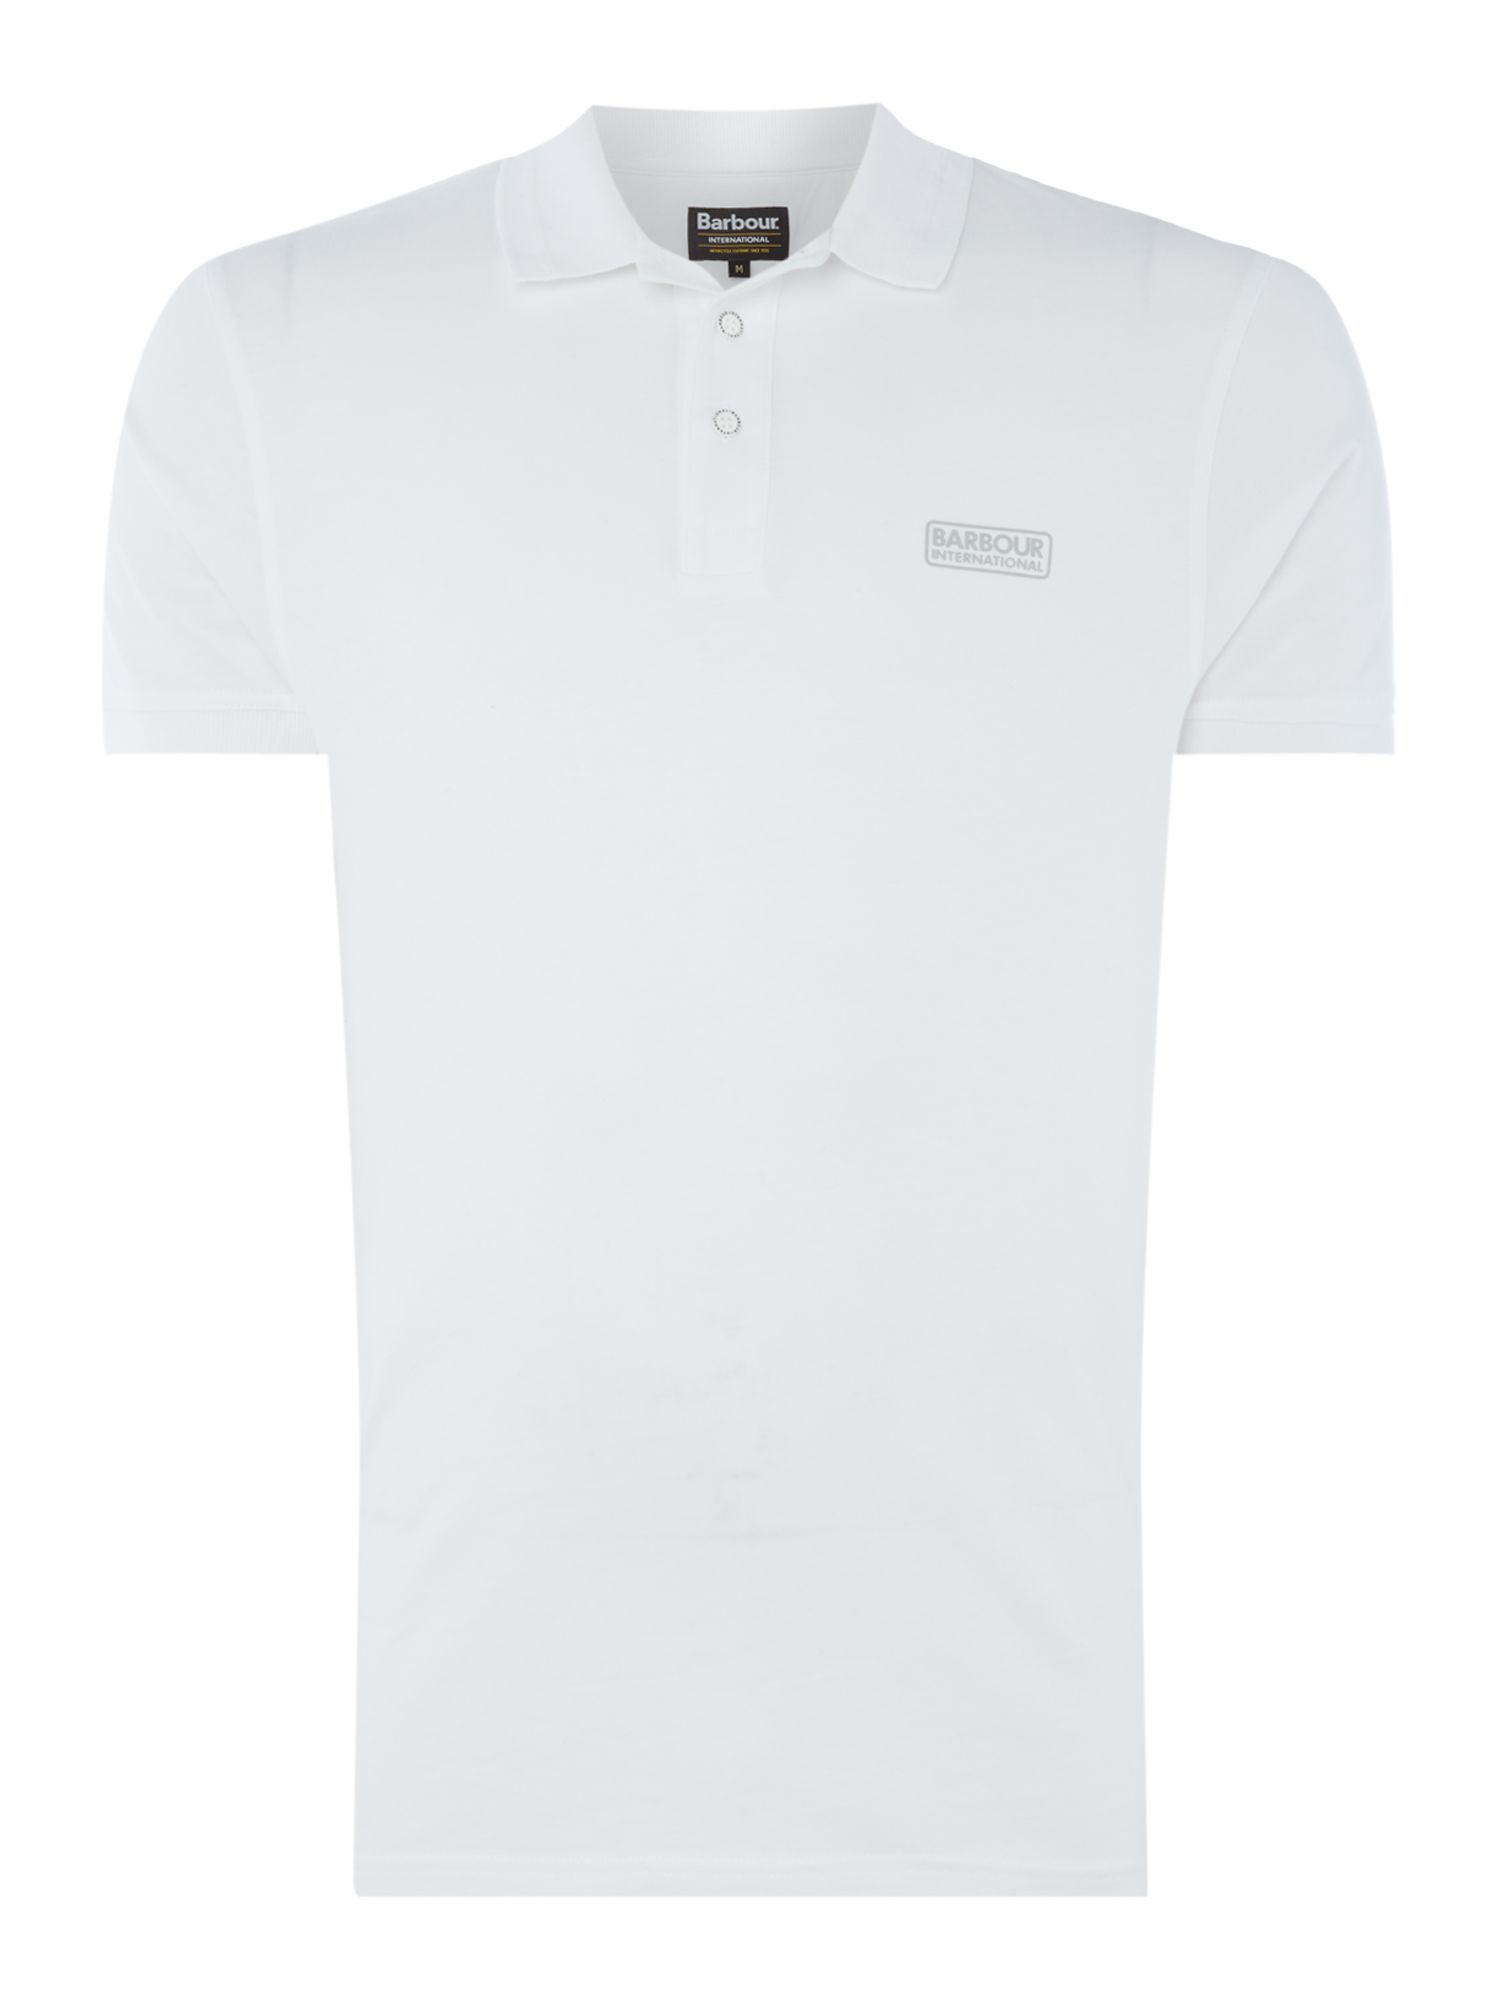 Men's Barbour Kick short sleeve polo, White